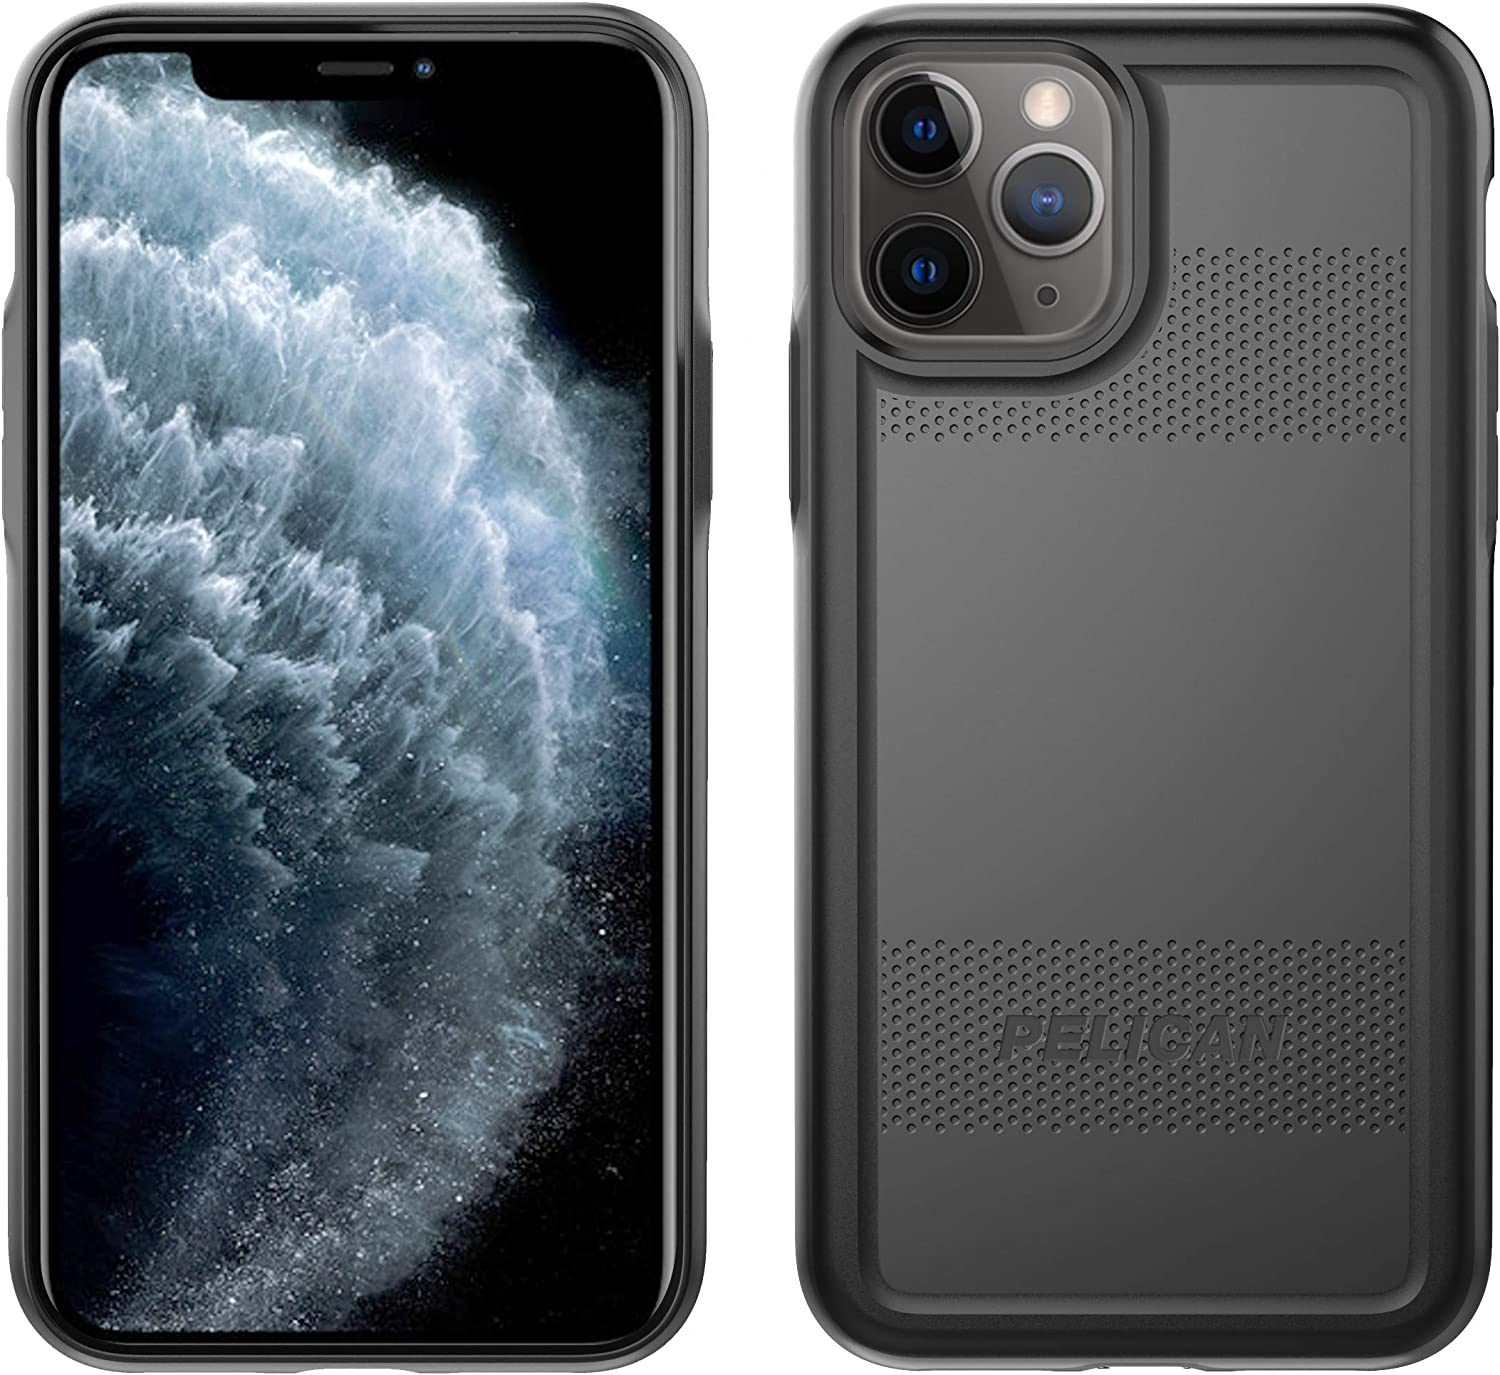 Pelican iPhone 11 Pro Case, Protector Series – Military Grade Drop Tested, TPU, Polycarbonate Protective Case for Apple iPhone 11 Pro (Black)